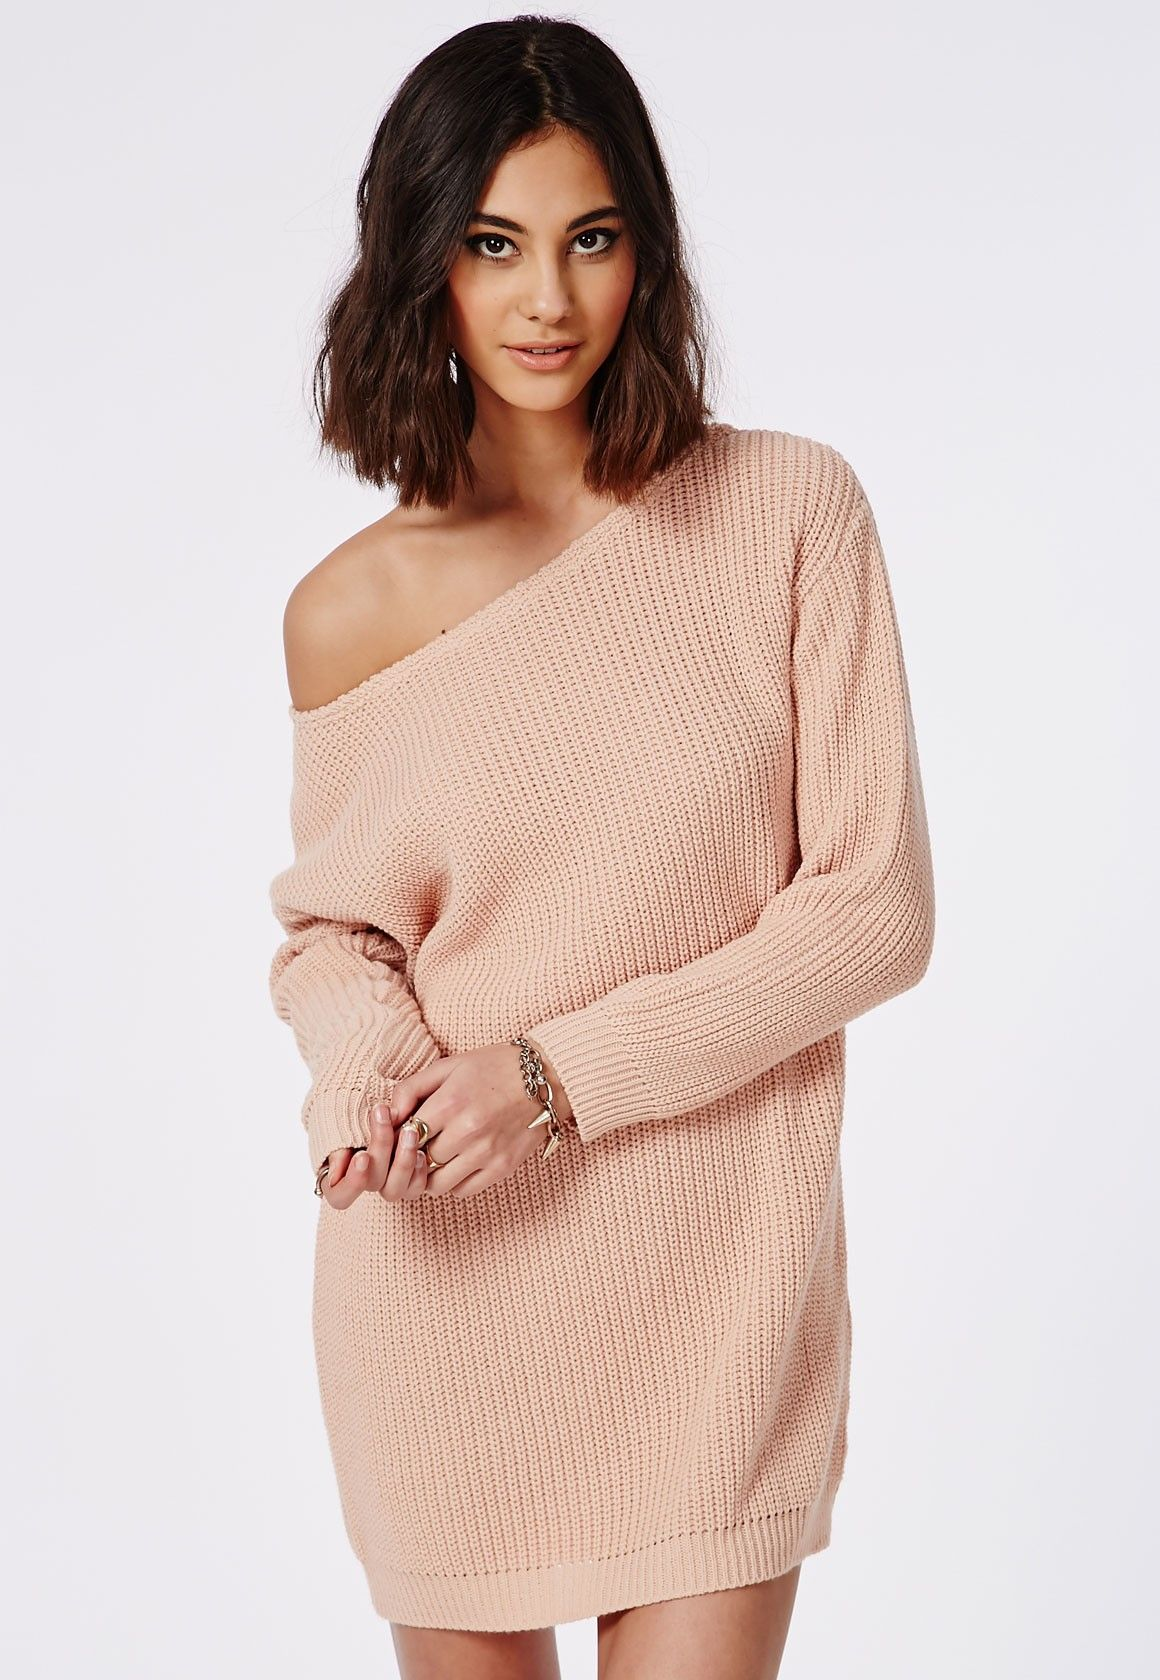 KNITWEAR - Jumpers Nude Sale Footlocker Cheap Newest Cheap Sale Prices Buy Cheap Professional Outlet Get To Buy 1kLmEtf